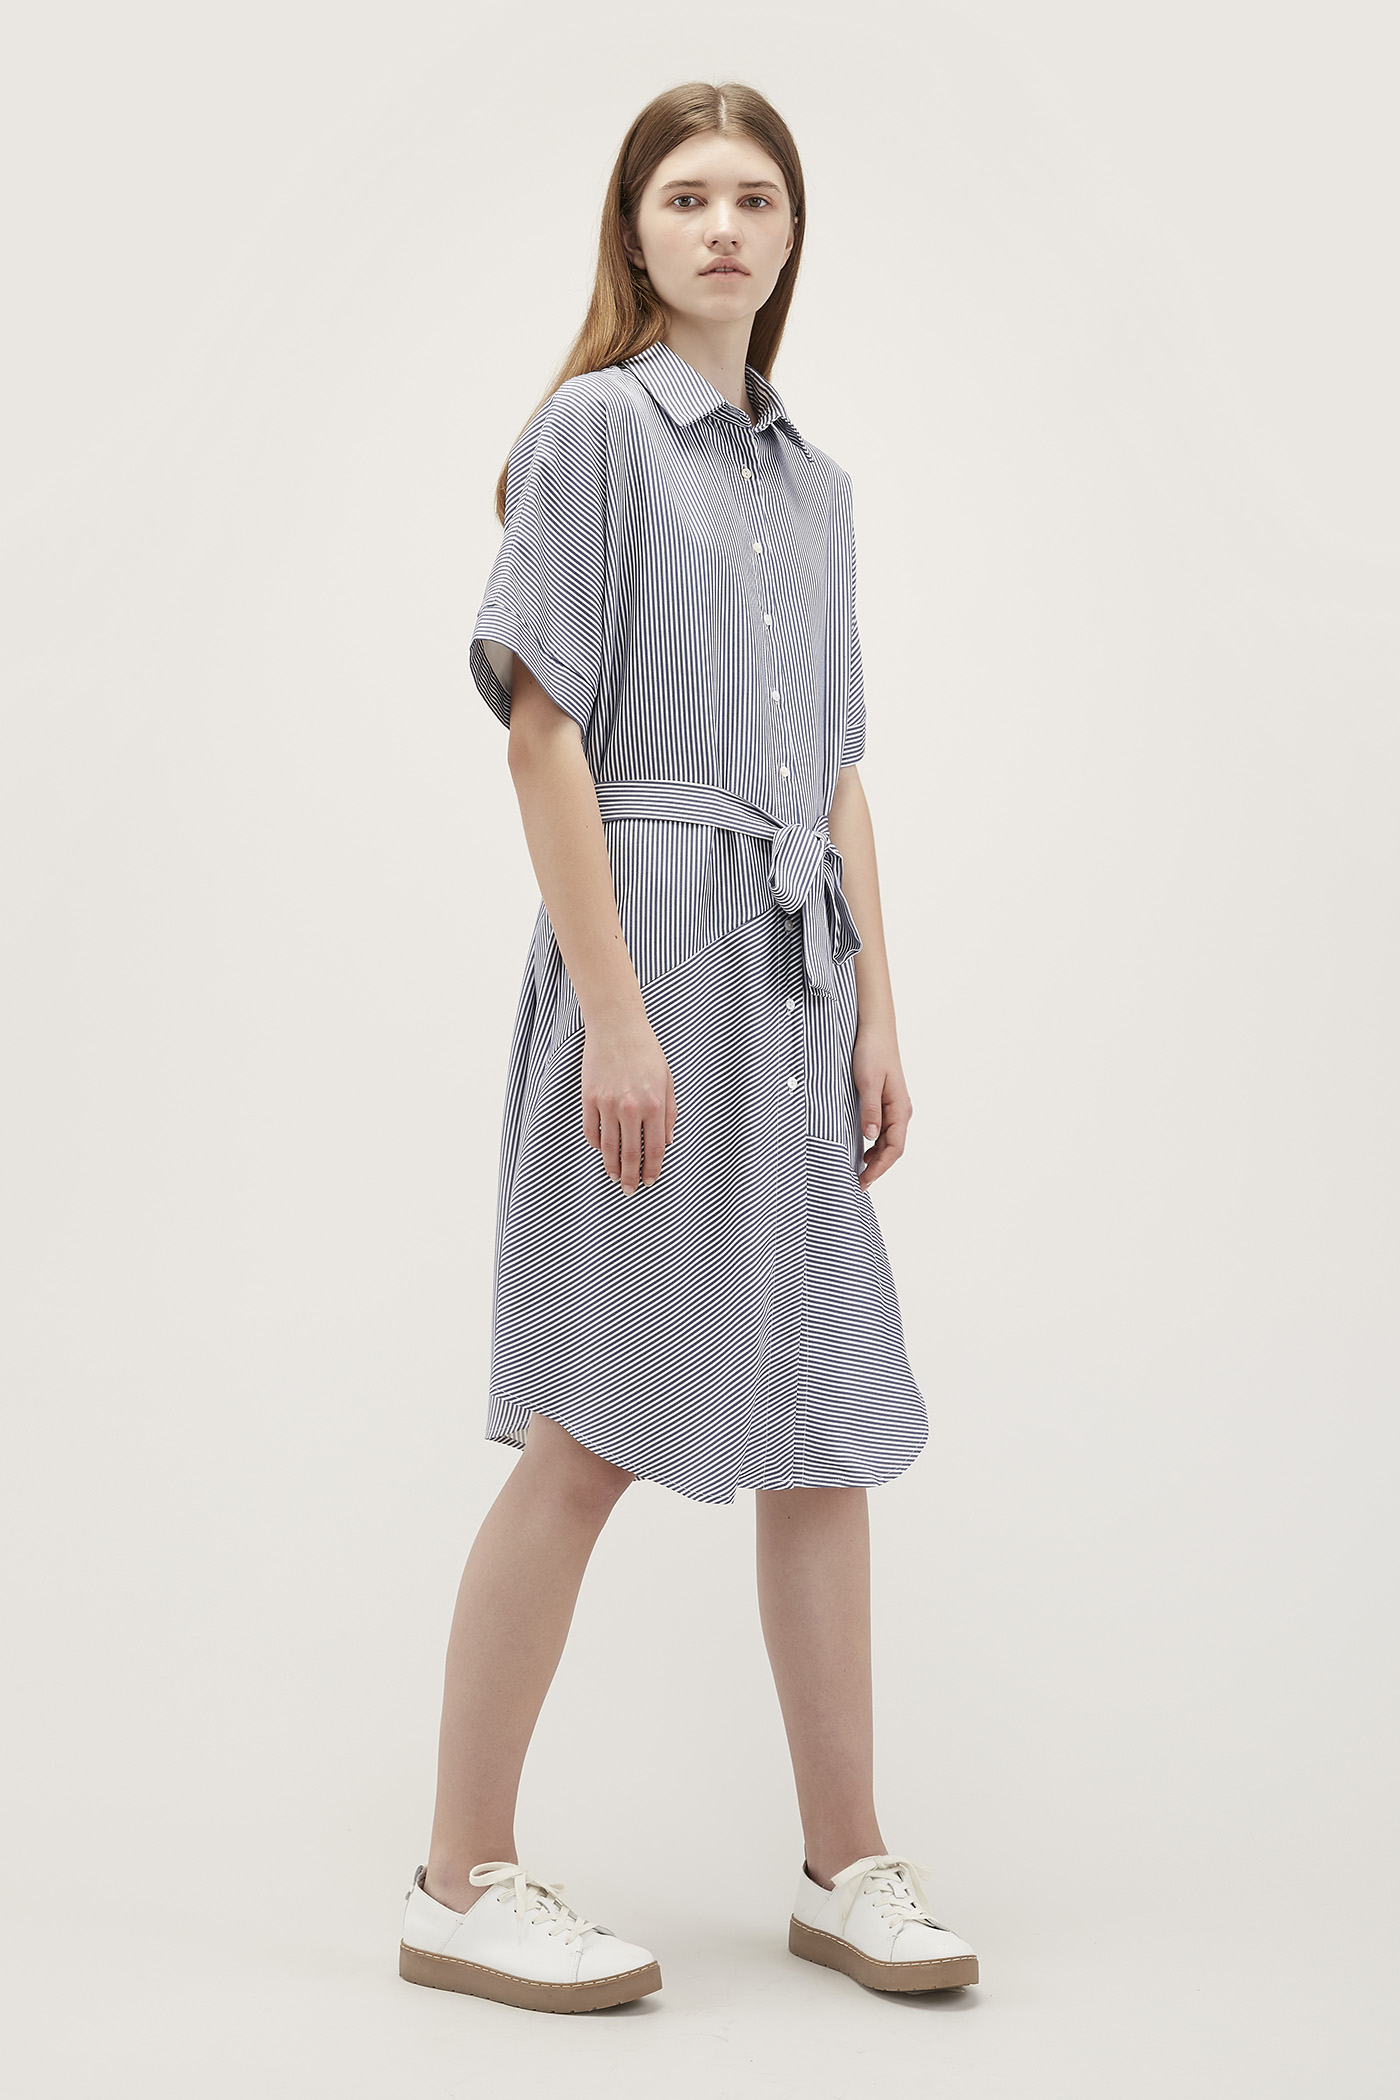 Karrah Shirtdress